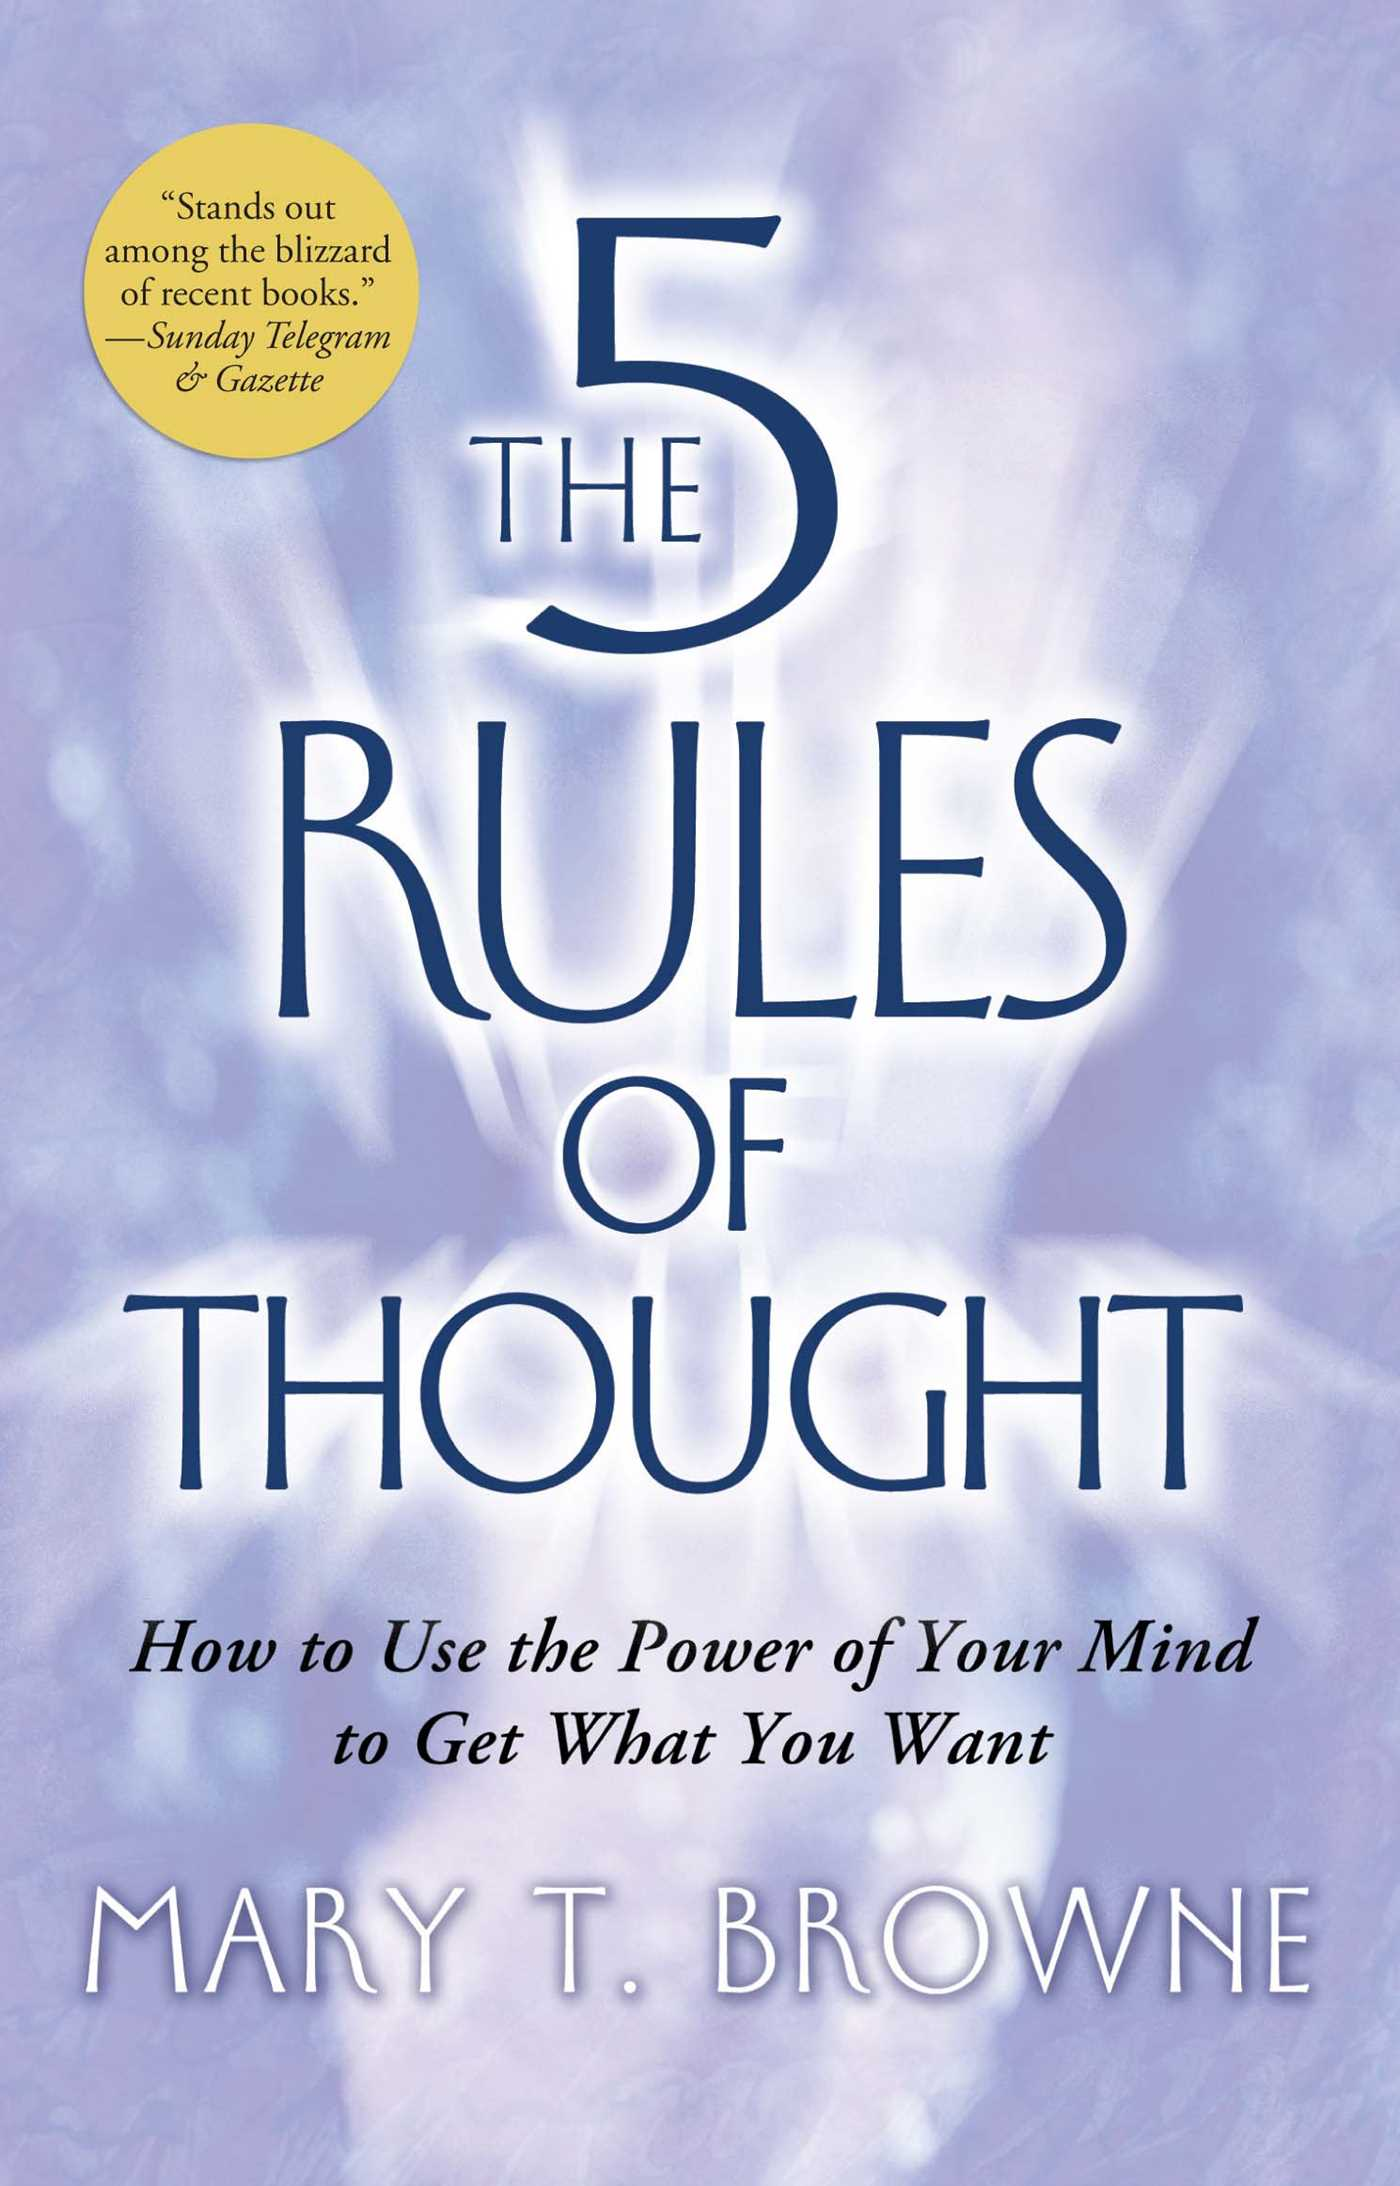 The-5-rules-of-thought-9781416537441_hr